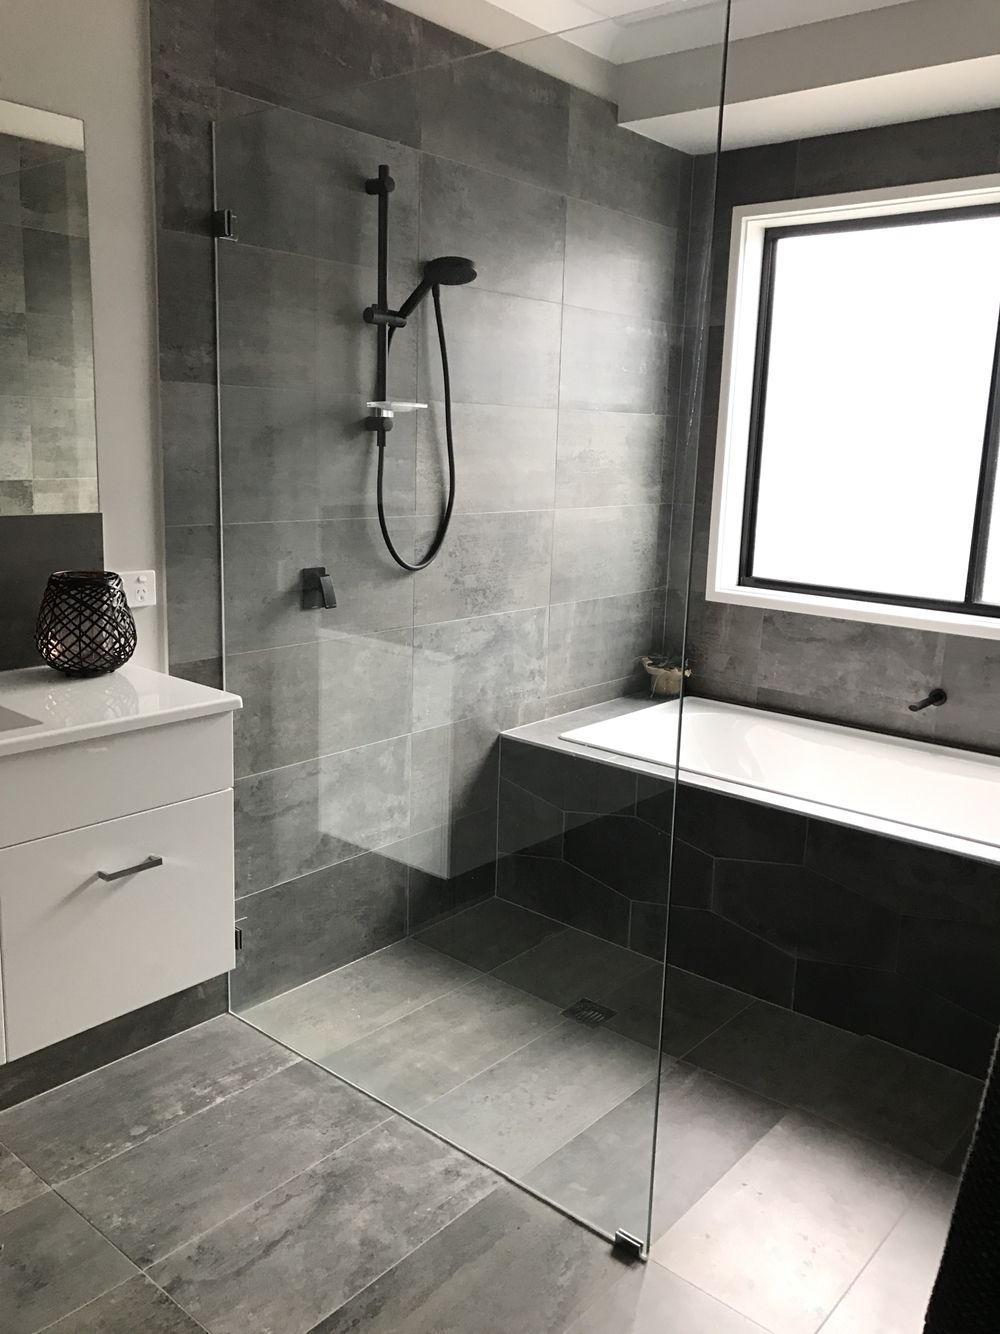 Modern open shower plan, next to the bath in the main bathroom